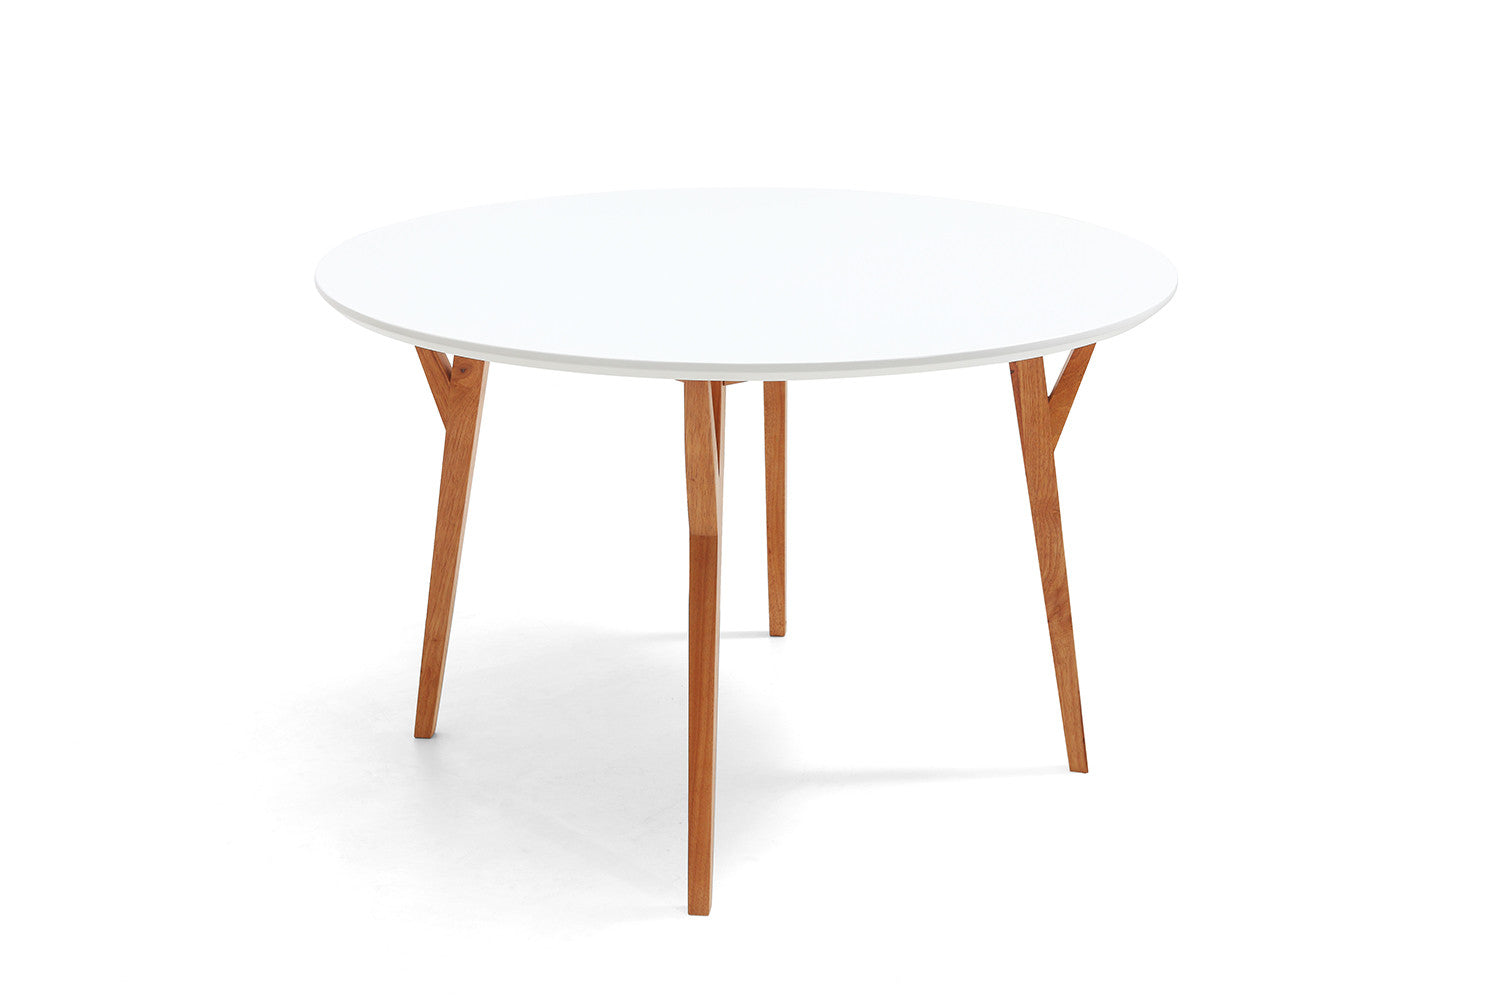 Table de salle manger ronde design scandinave moesa for Grande table a manger ronde